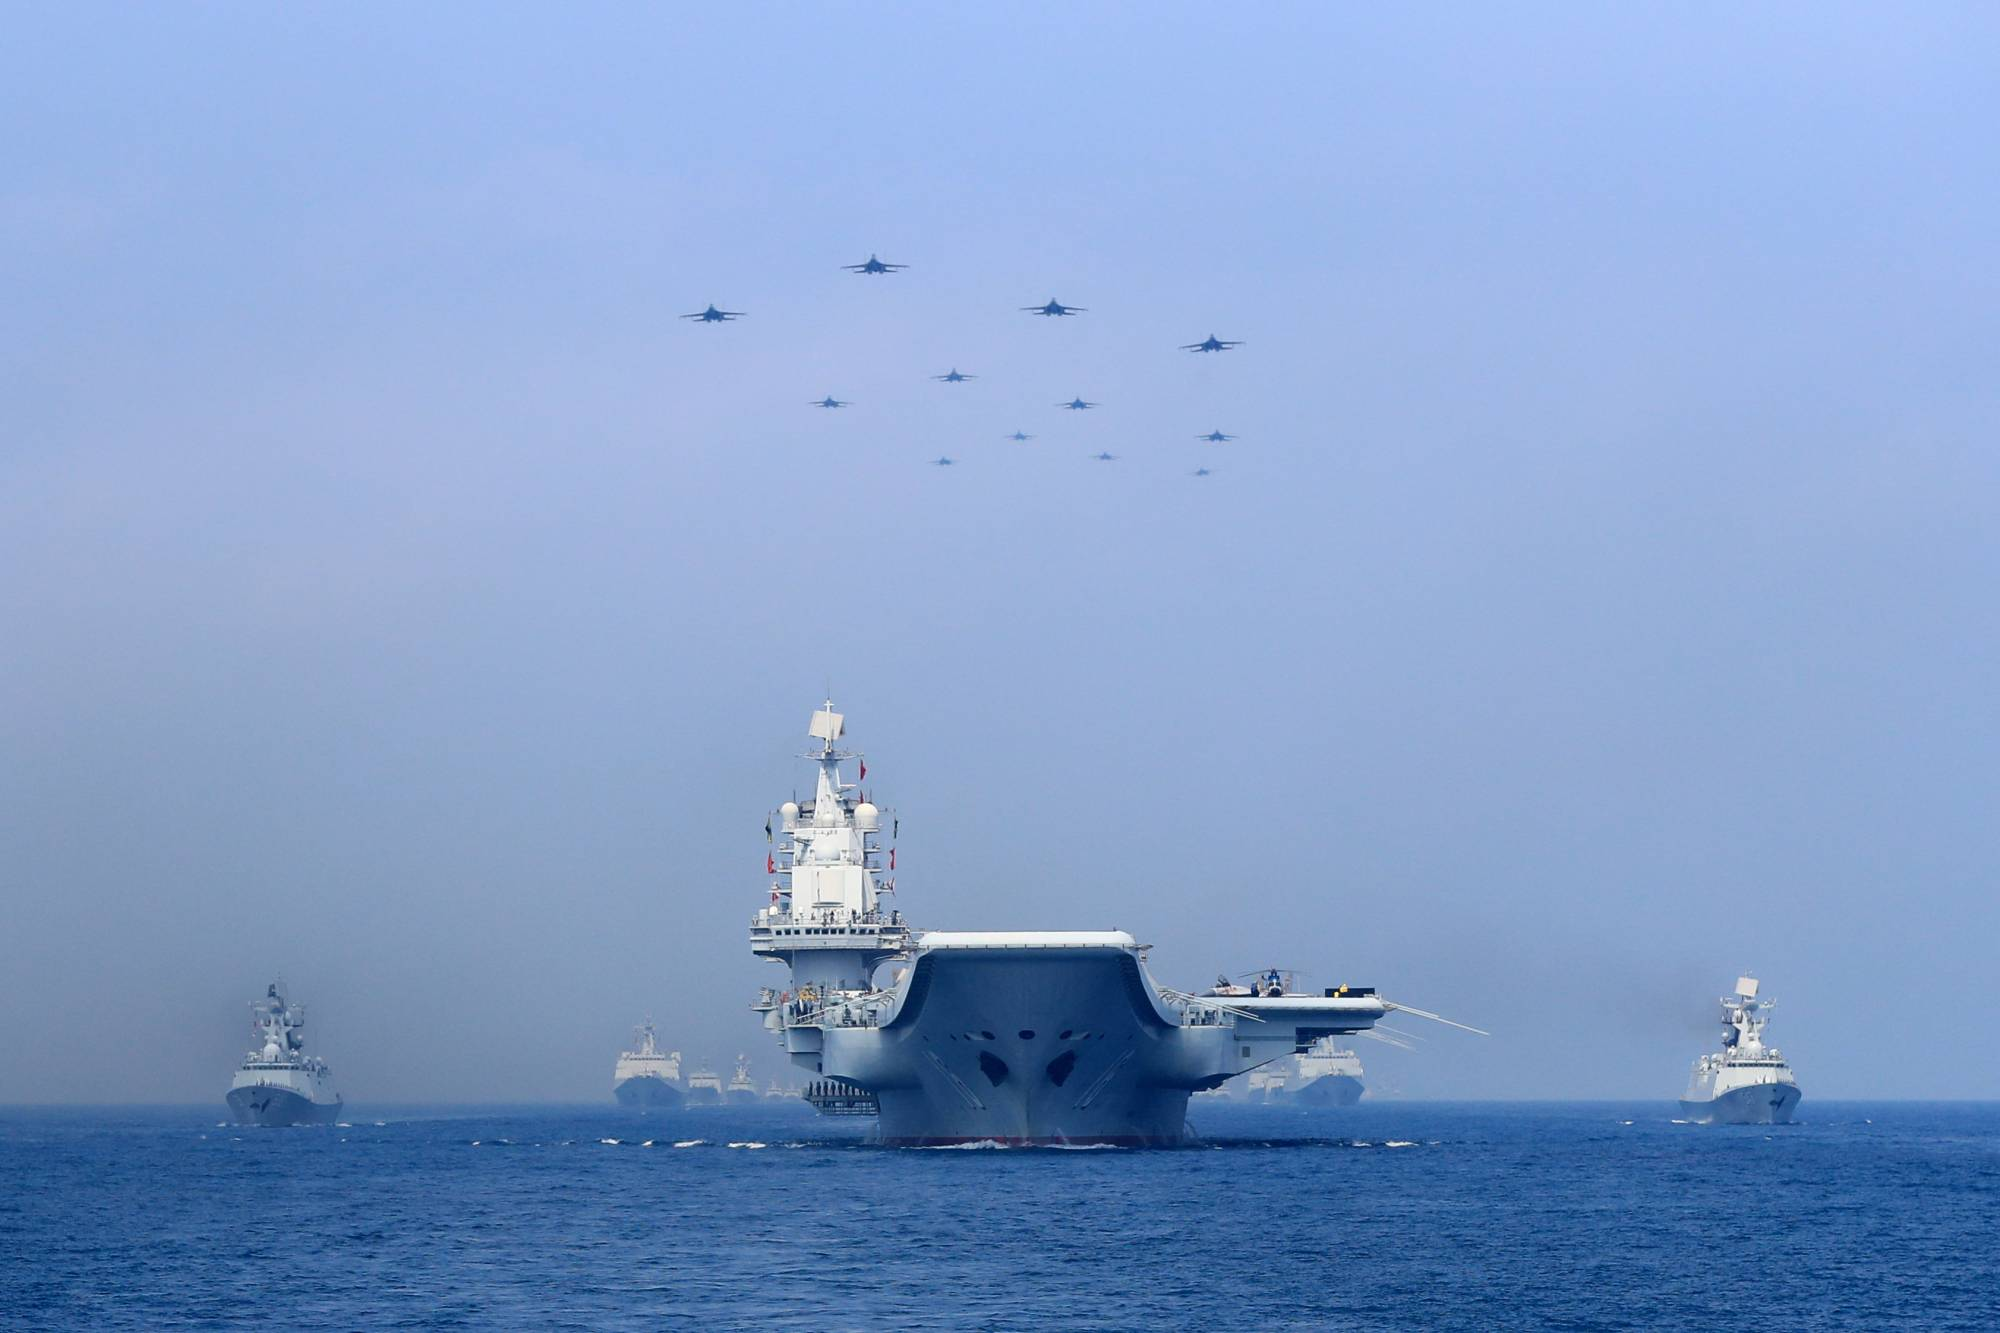 Warships and fighter jets of Chinese People's Liberation Army (PLA) Navy take part in a military display in the South China Sea in April 2018. | REUTERS